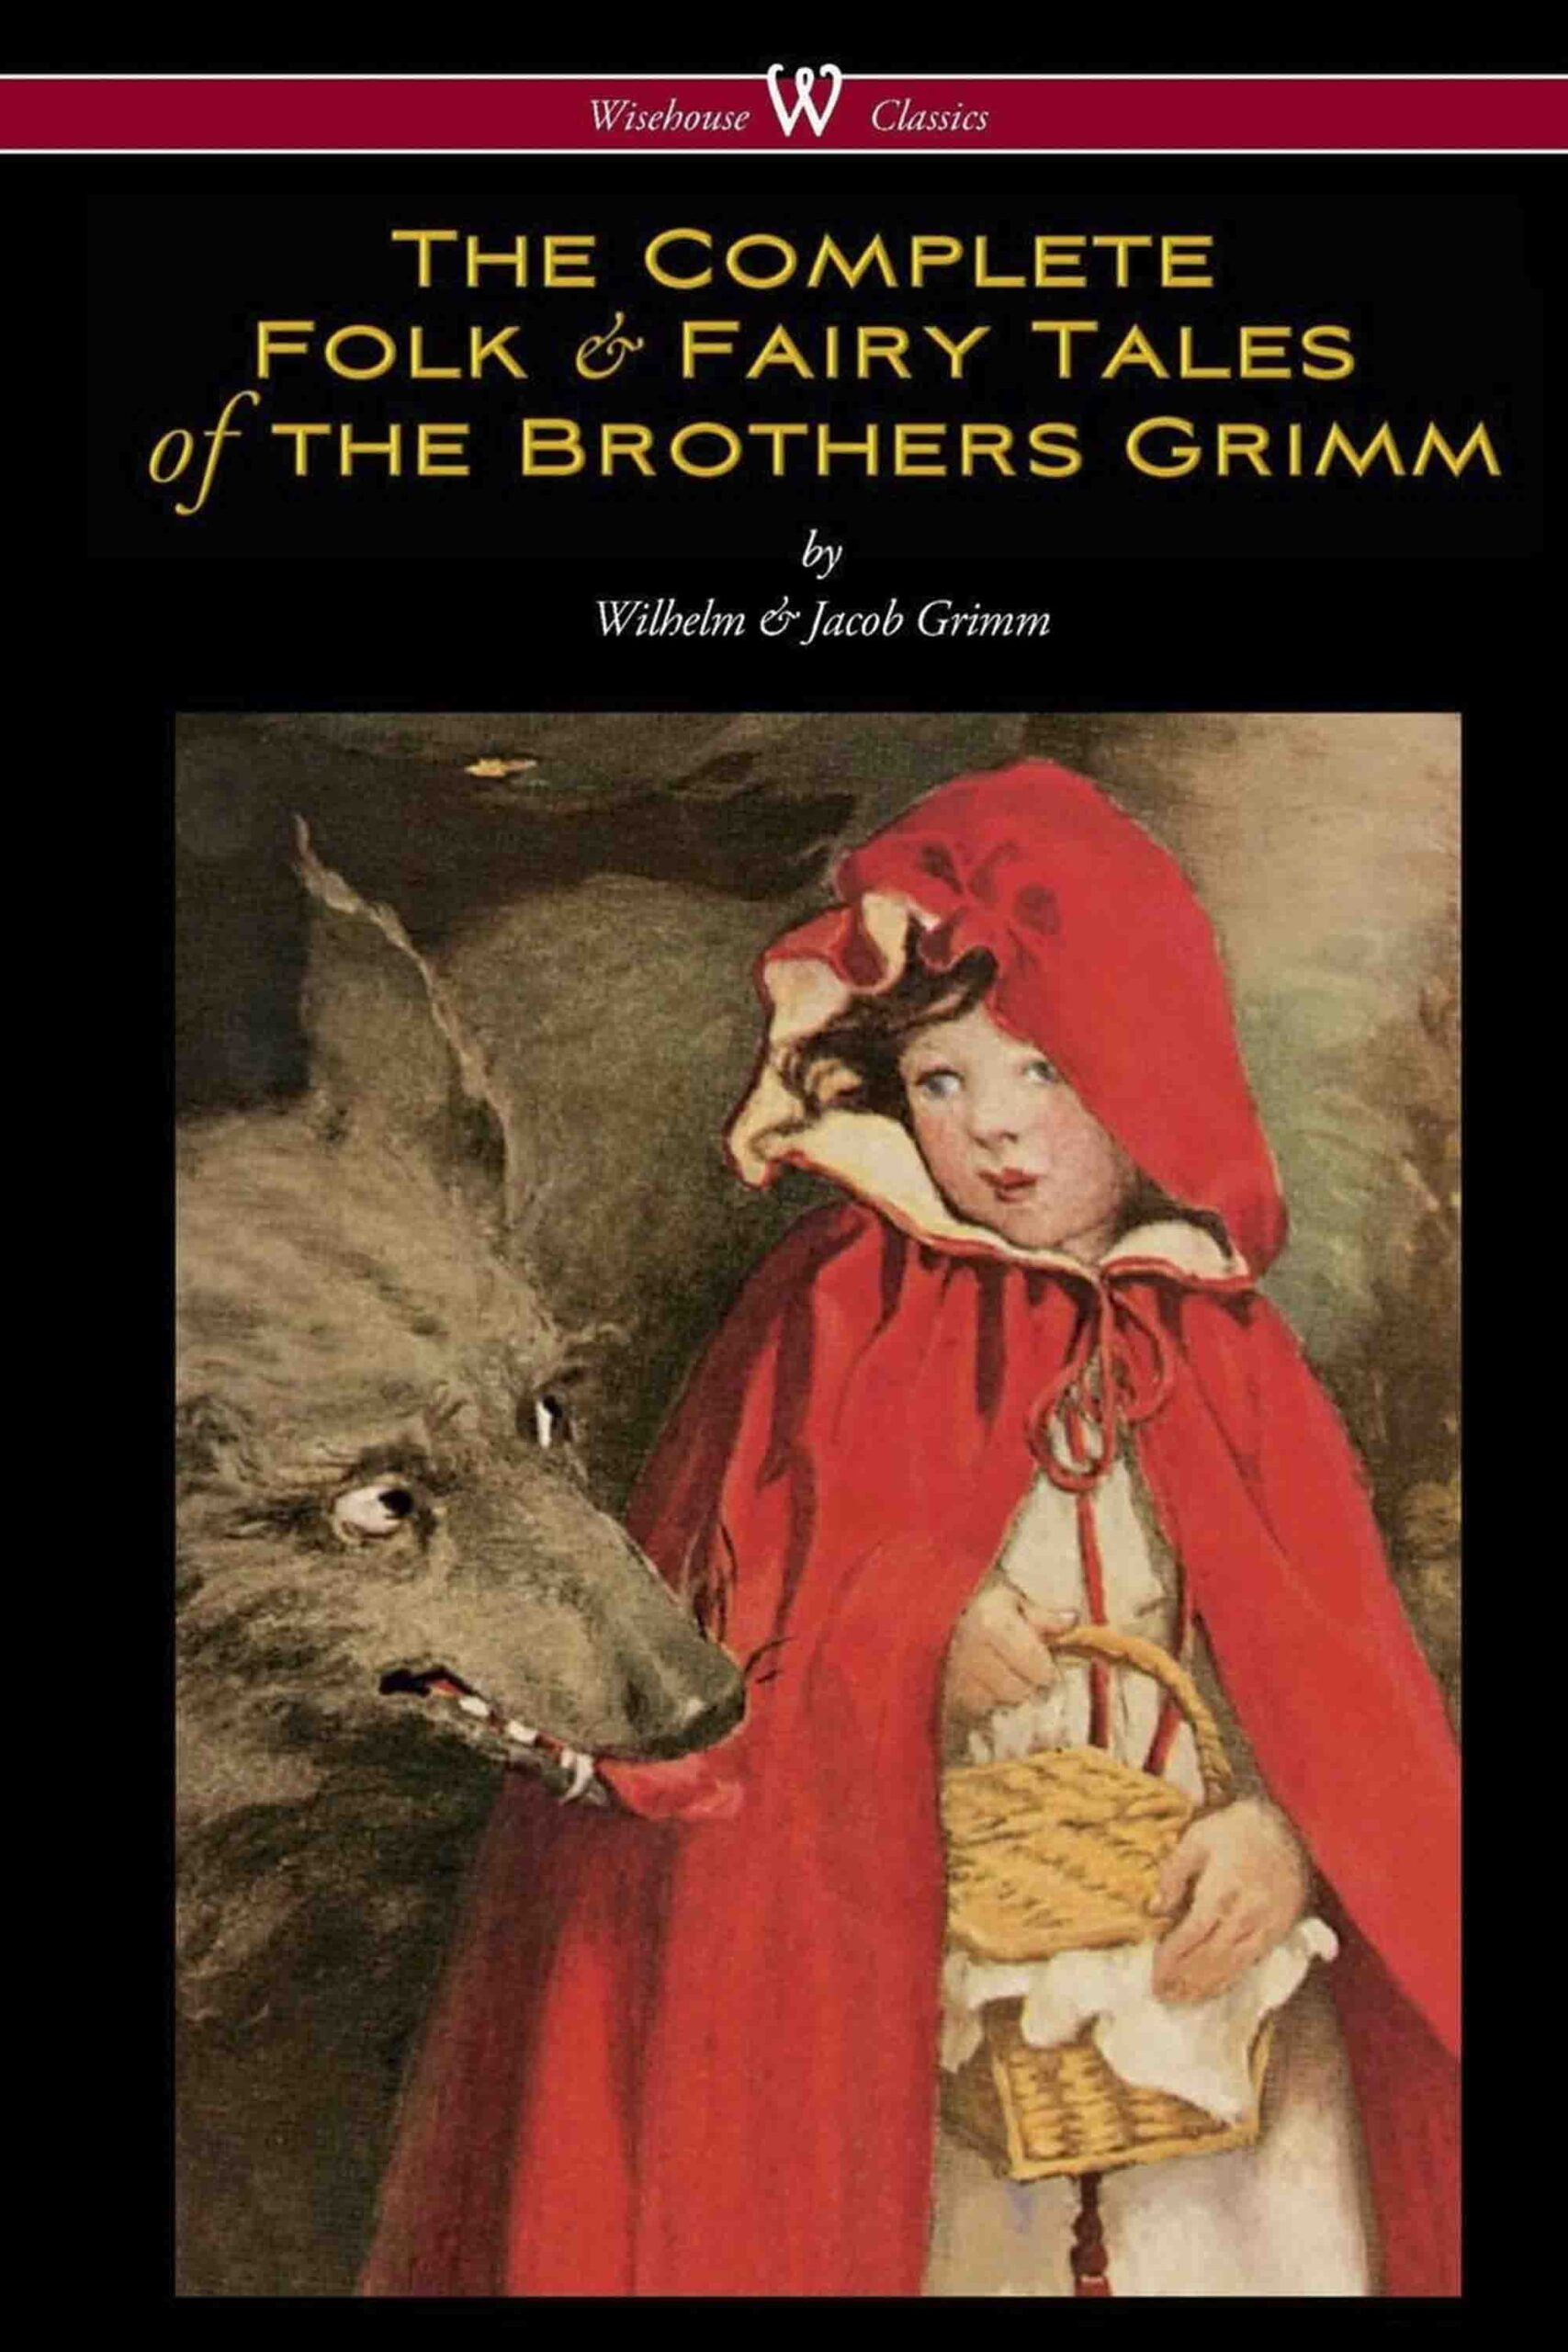 The Complete Folk + Fairy Tales of the Brothers Grimm (Wisehouse Classics – The Complete and Authoritative Edition)